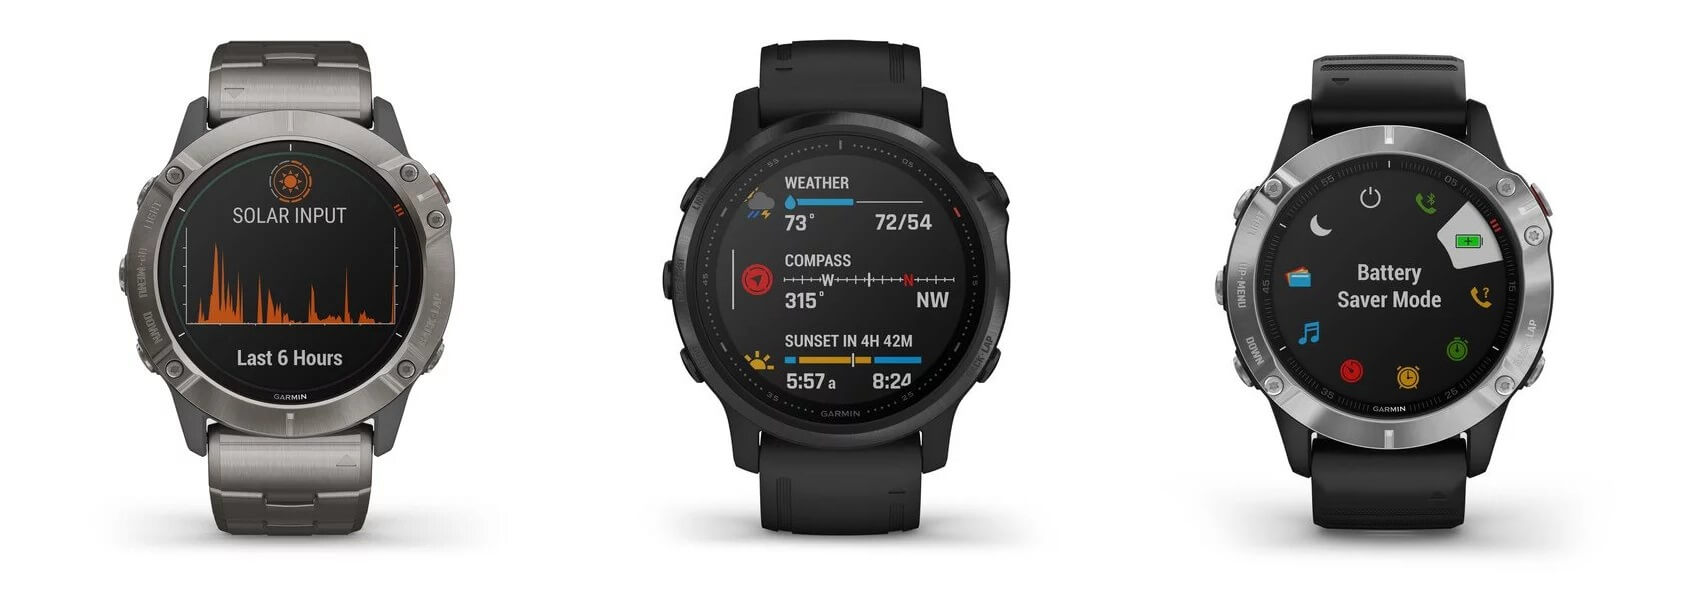 garmin-fenix-6-series-features